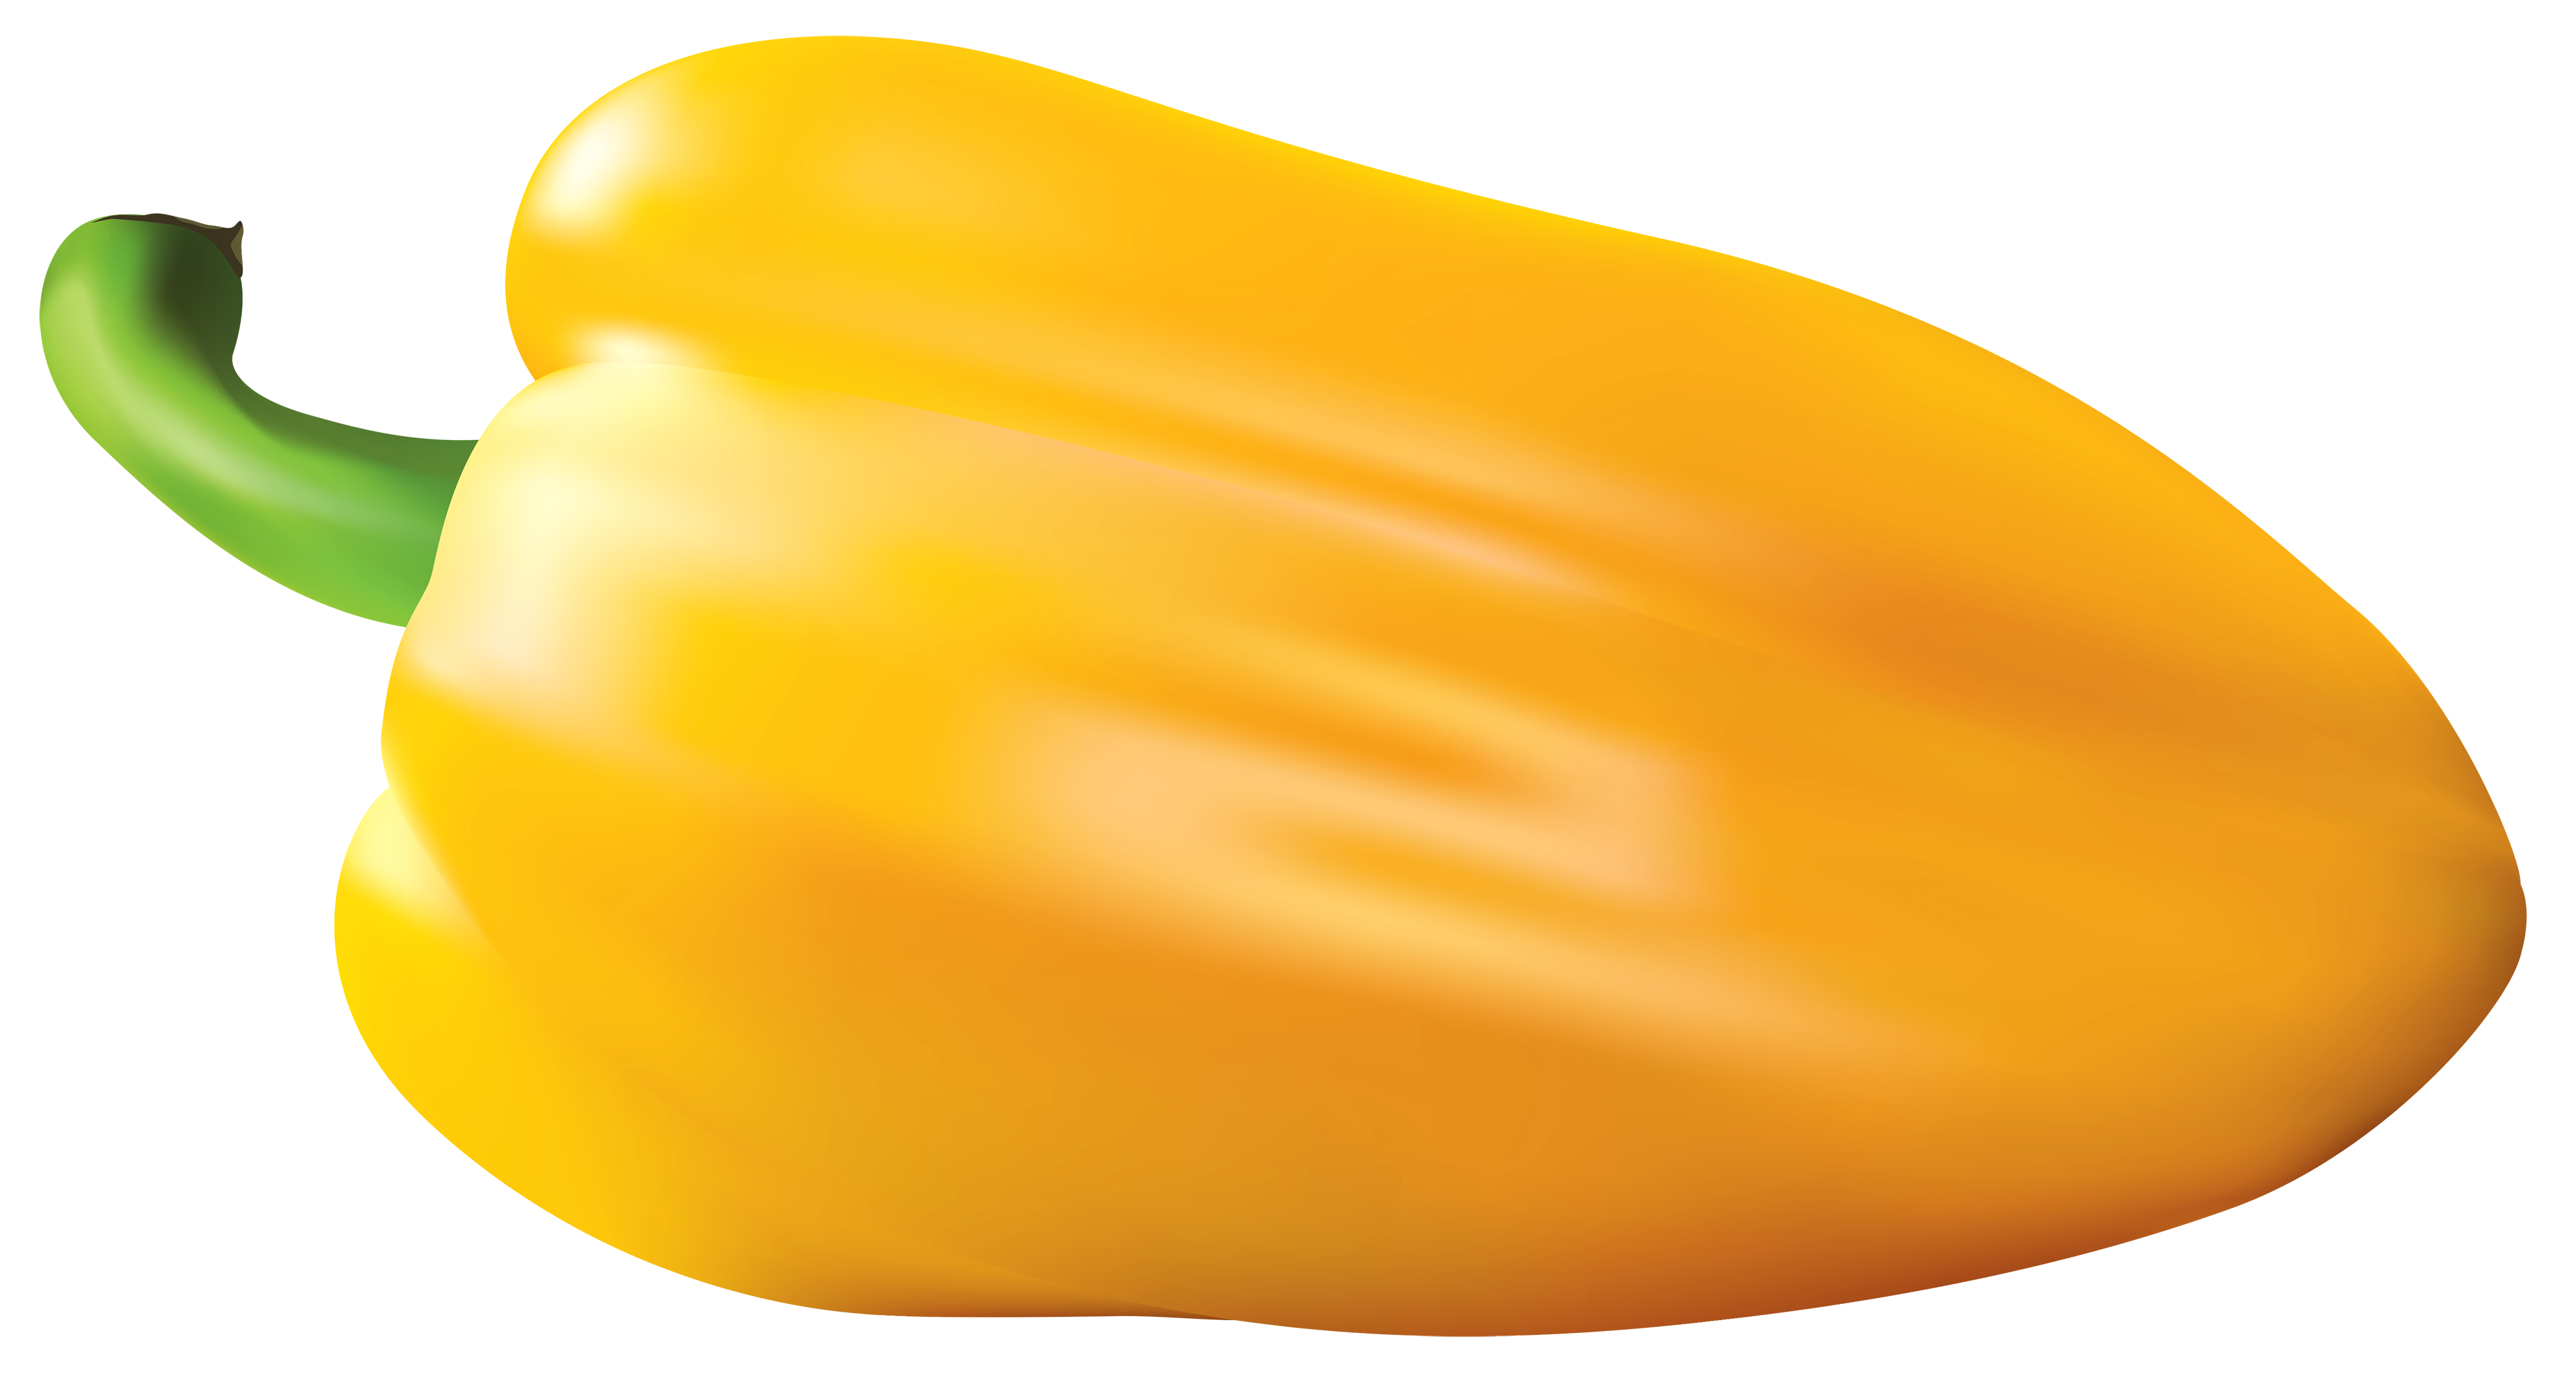 Pepper png vector image. Vegetables clipart yellow vegetable